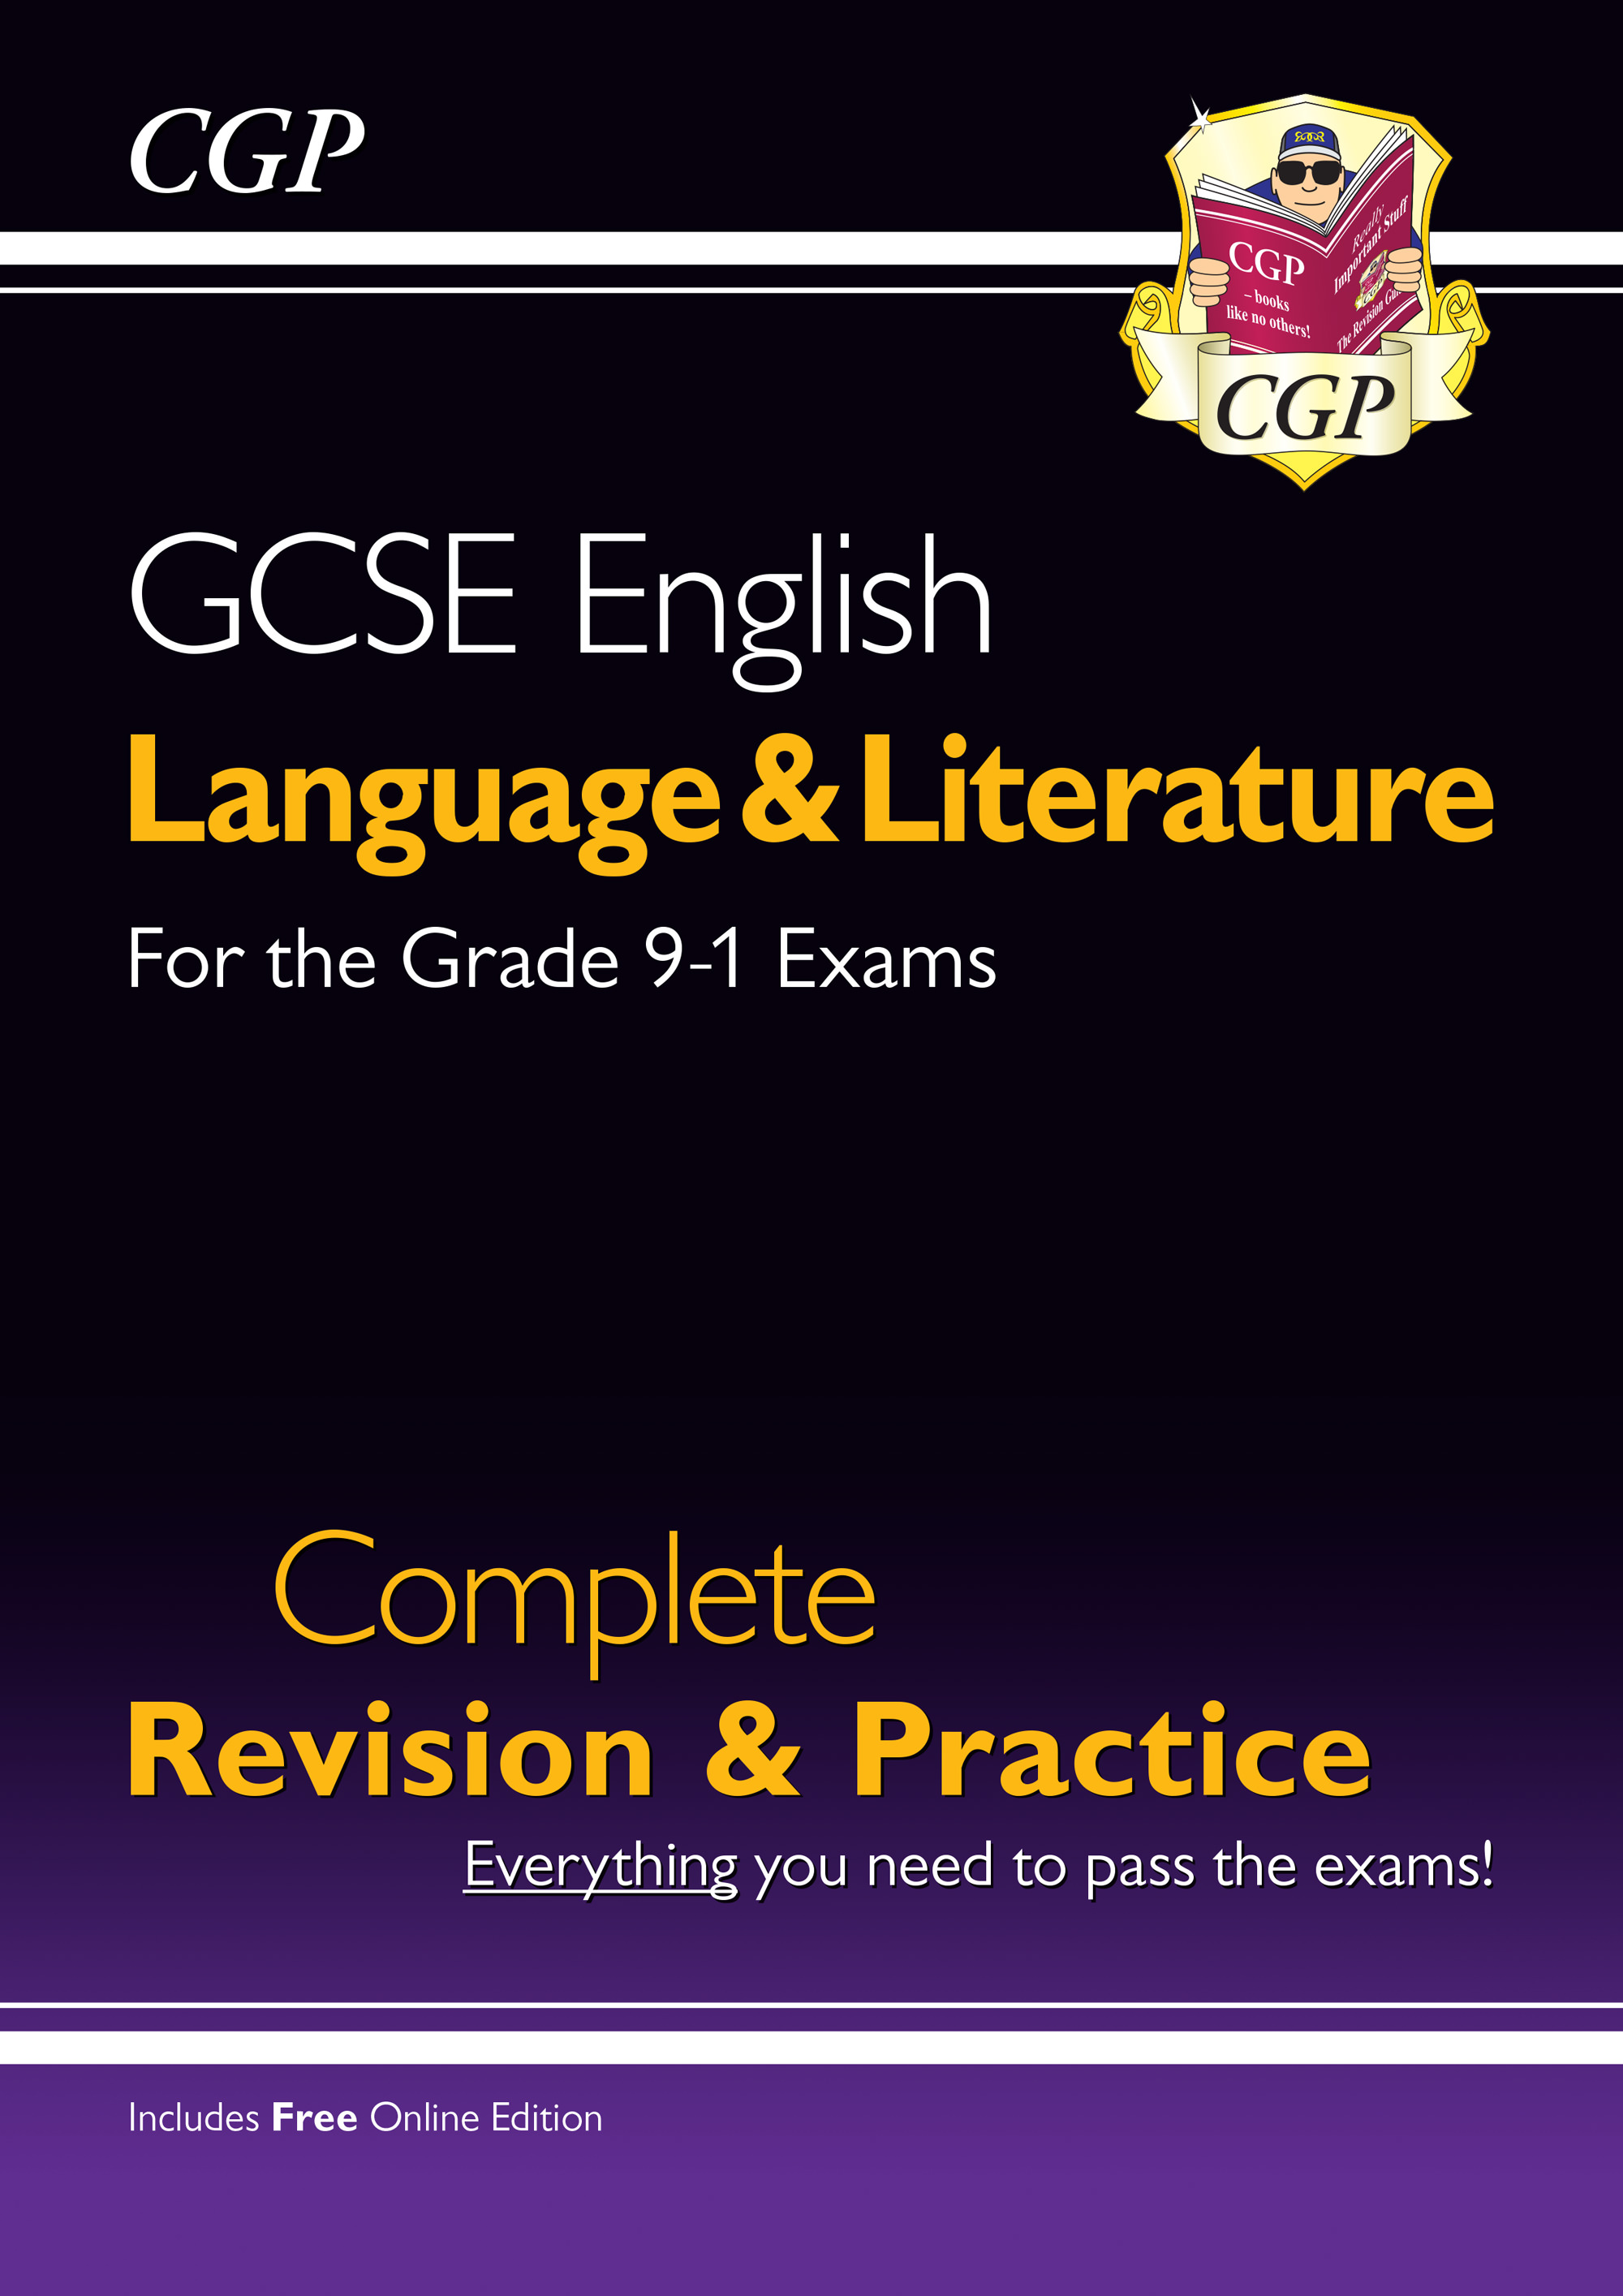 EHS45 - Grade 9-1 GCSE English Language and Literature Complete Revision & Practice (with Online Edn